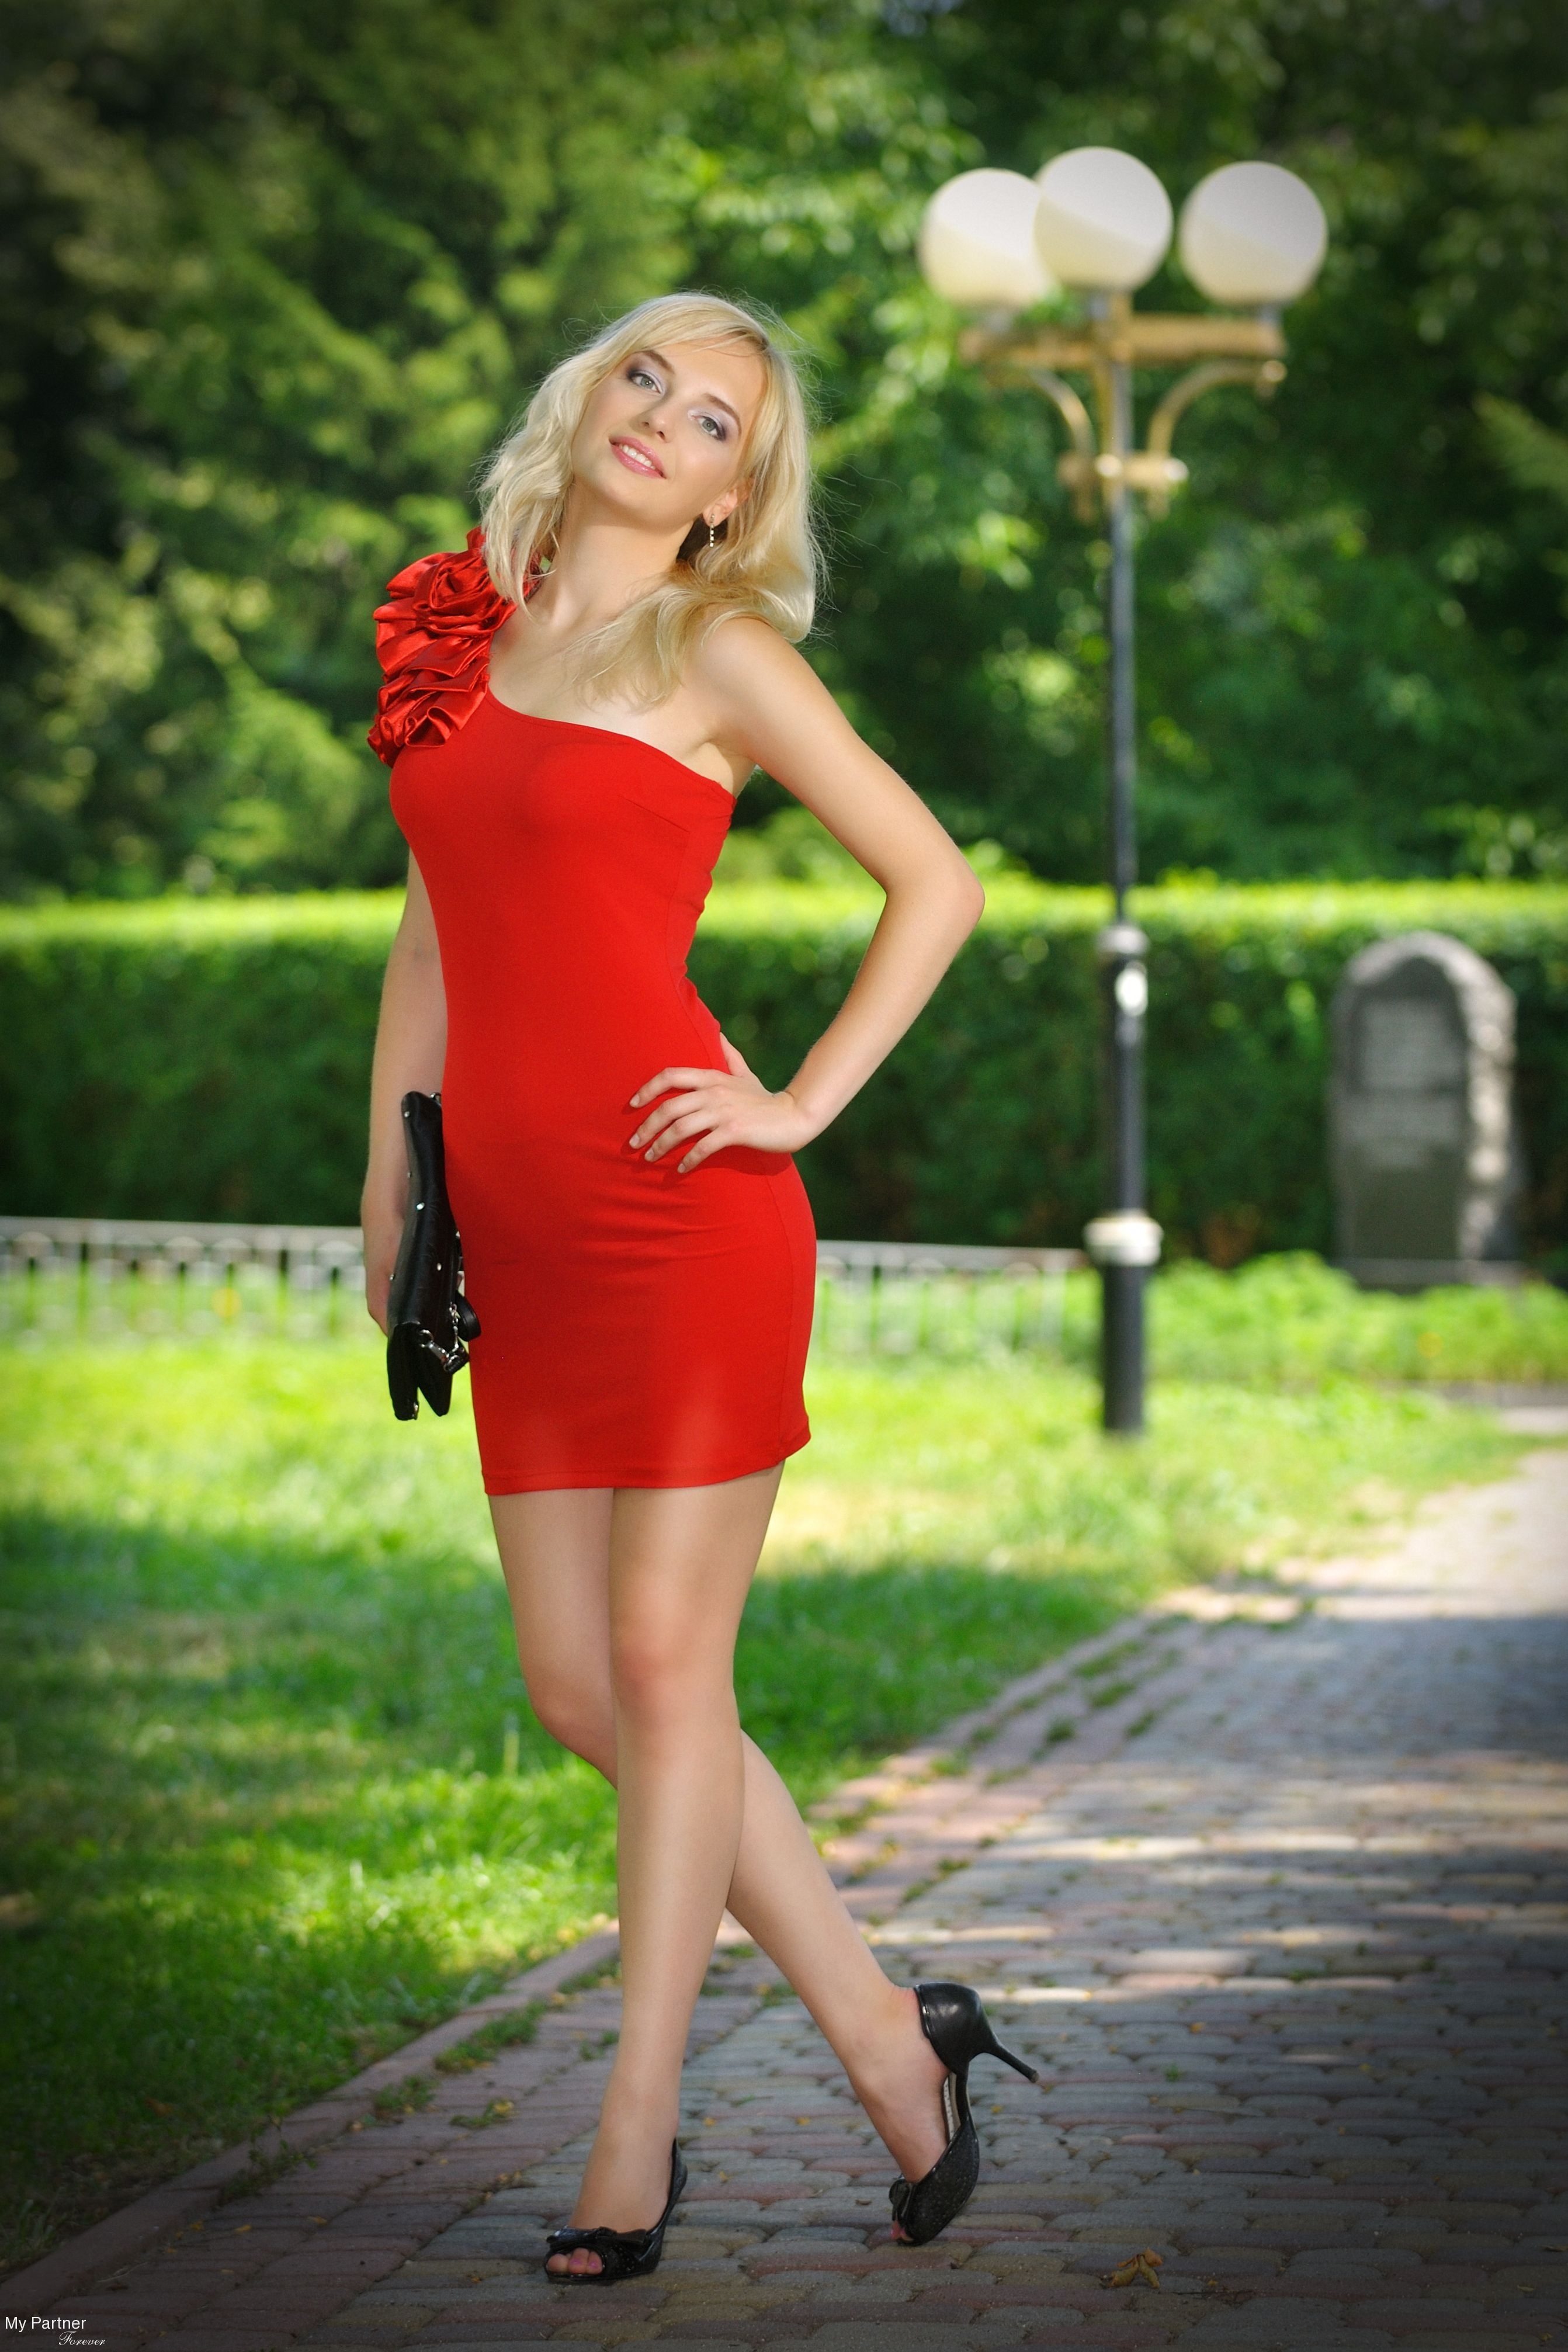 Russian girl online dating